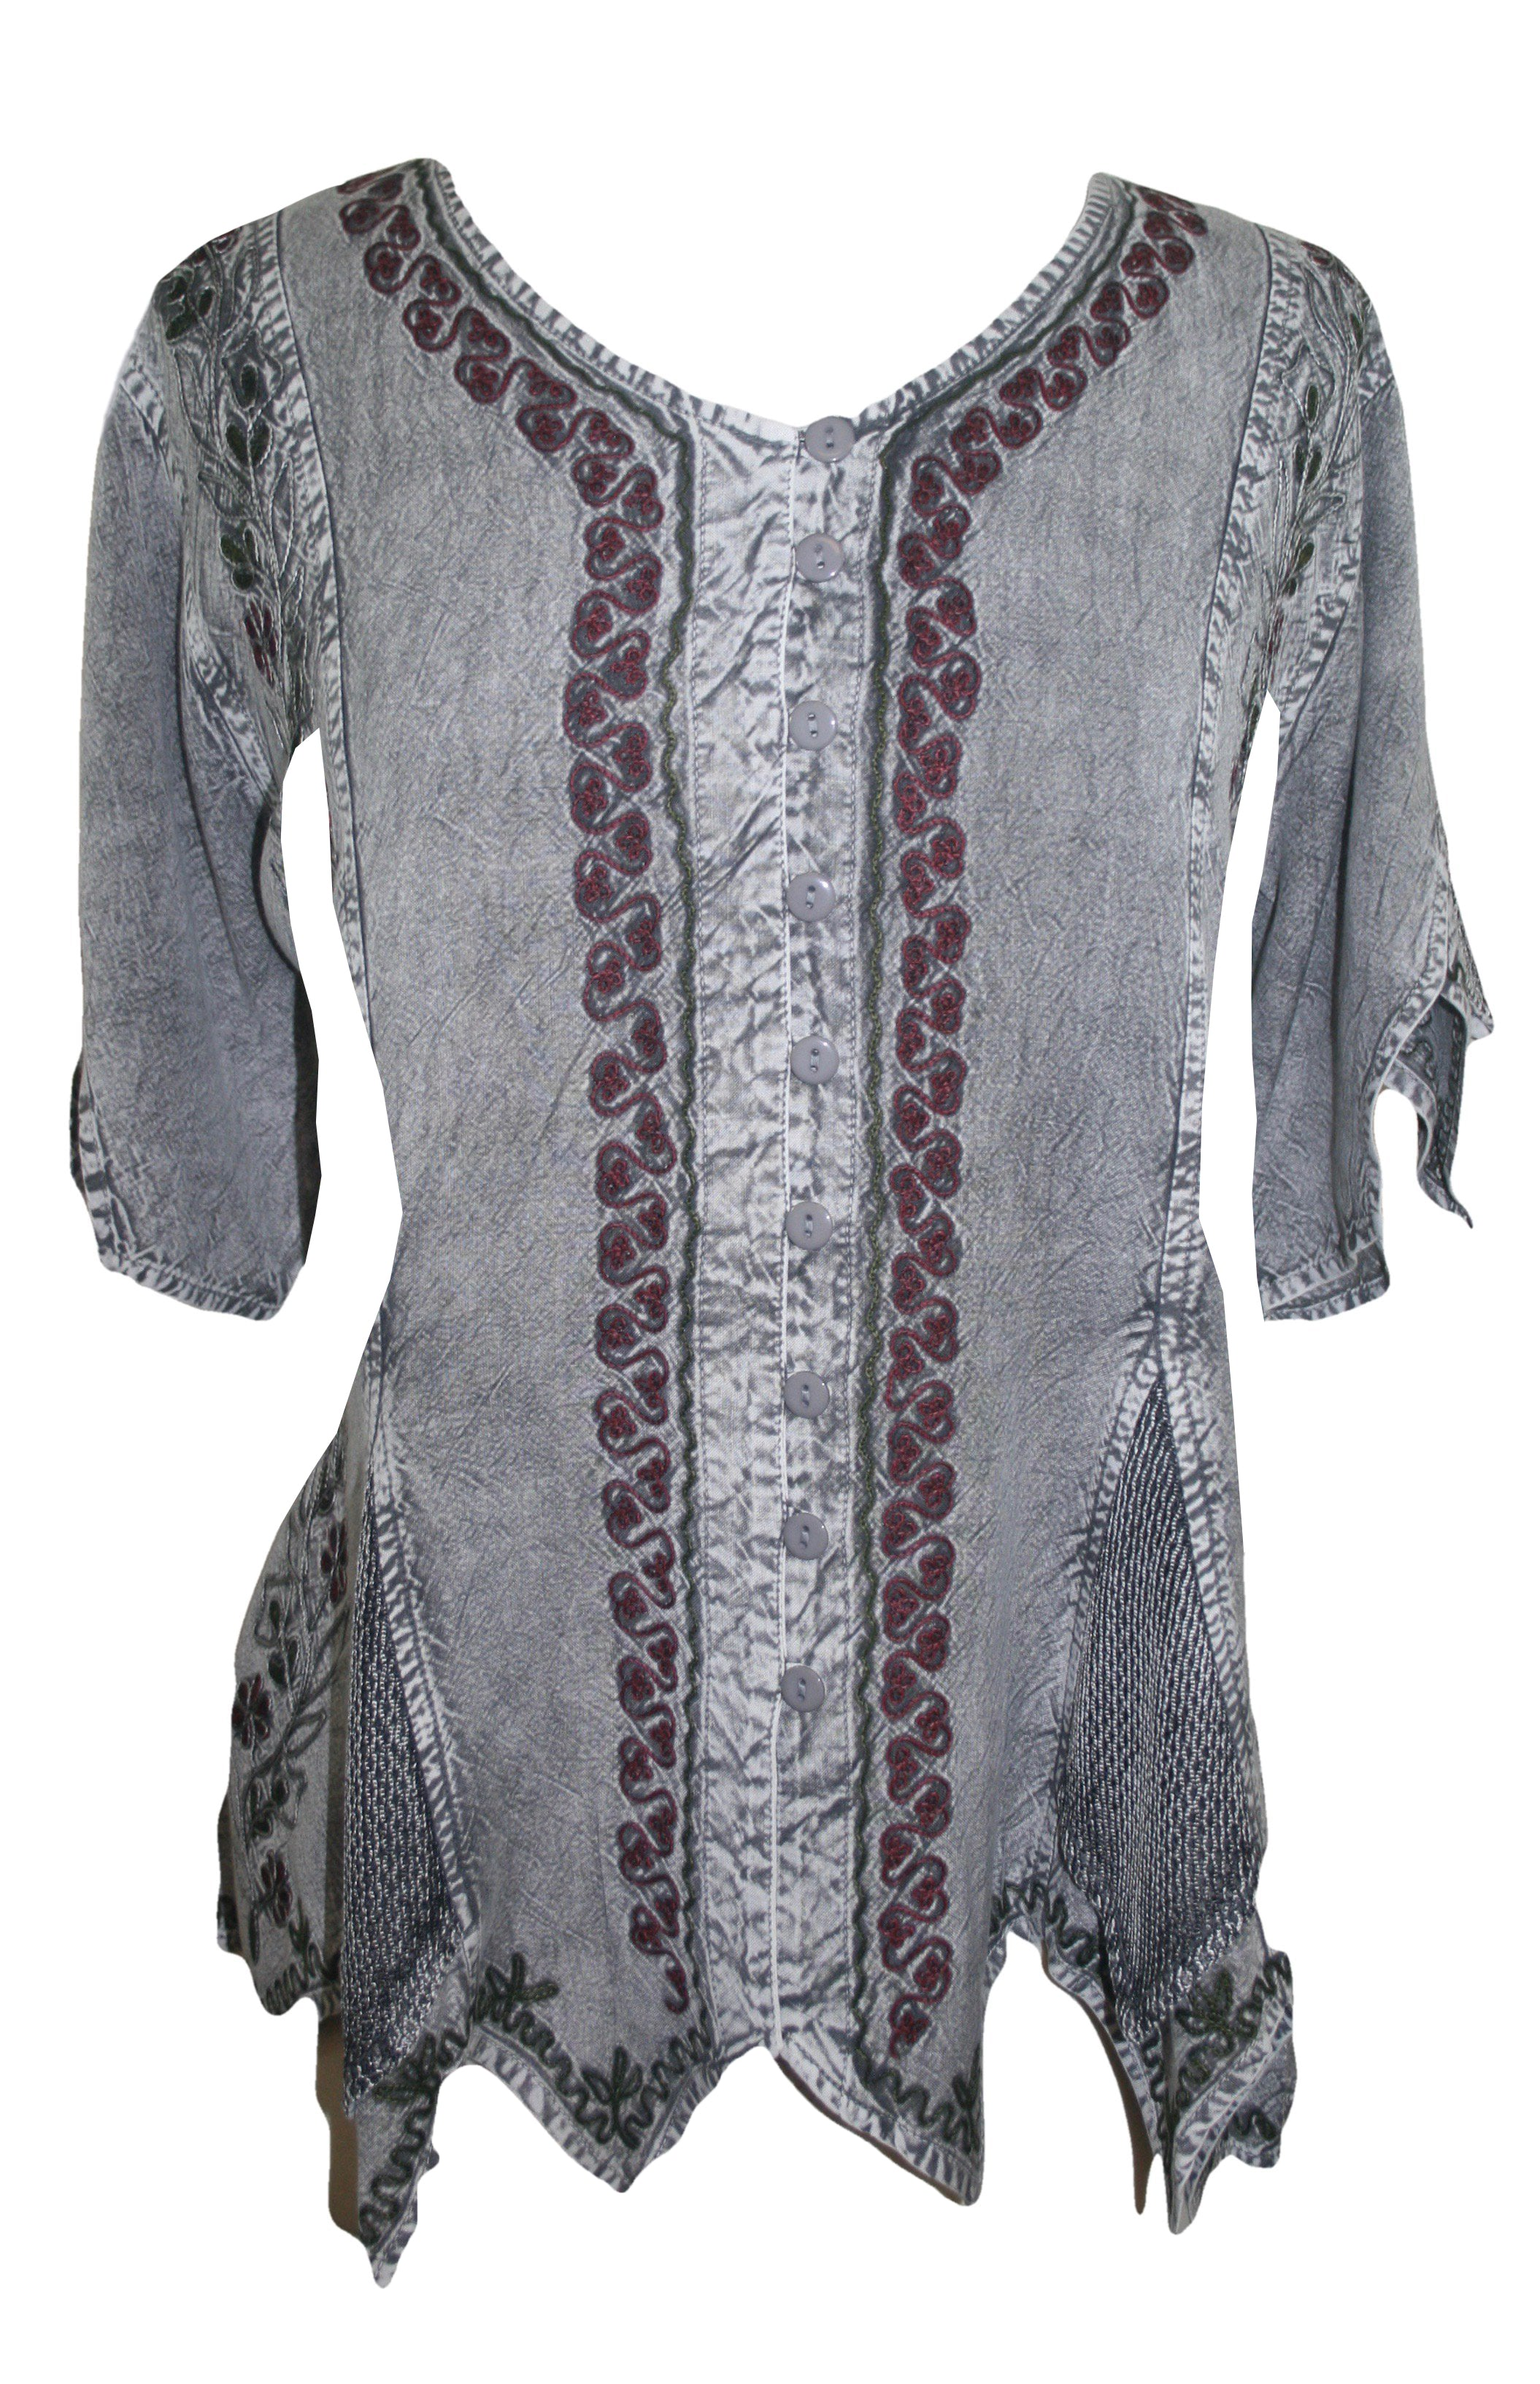 Gypsy Medieval Netted Assymetrical Vintage Top Blouse - Agan Traders, Silver C